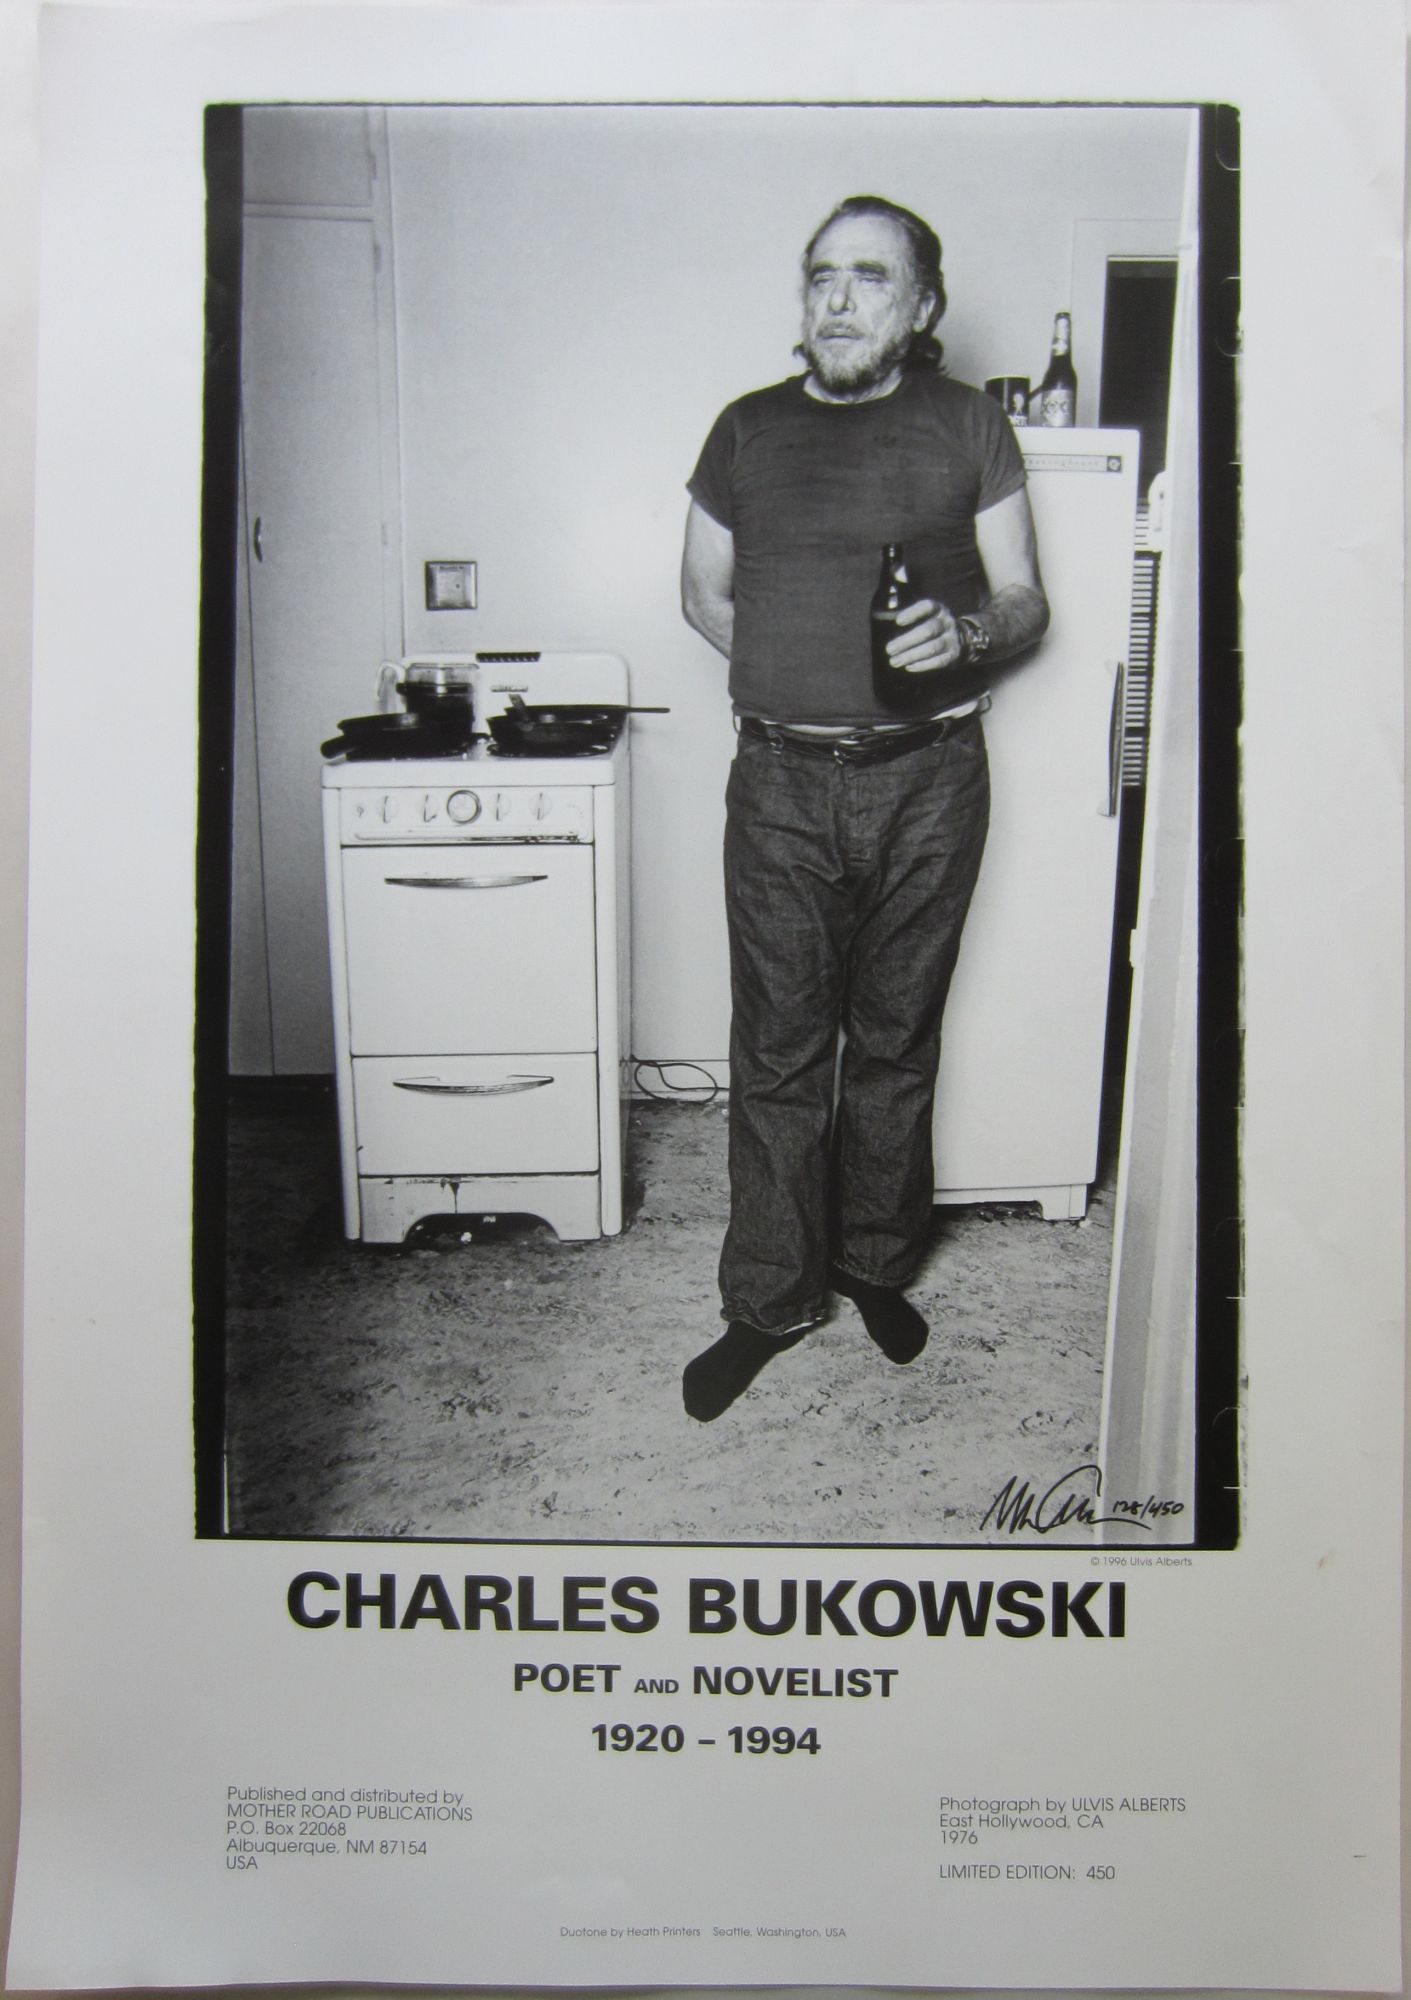 poster printing a photo of bukowski in his east hollywood apartment 1976 by chalres bukowski ulvis alberts on skyline books